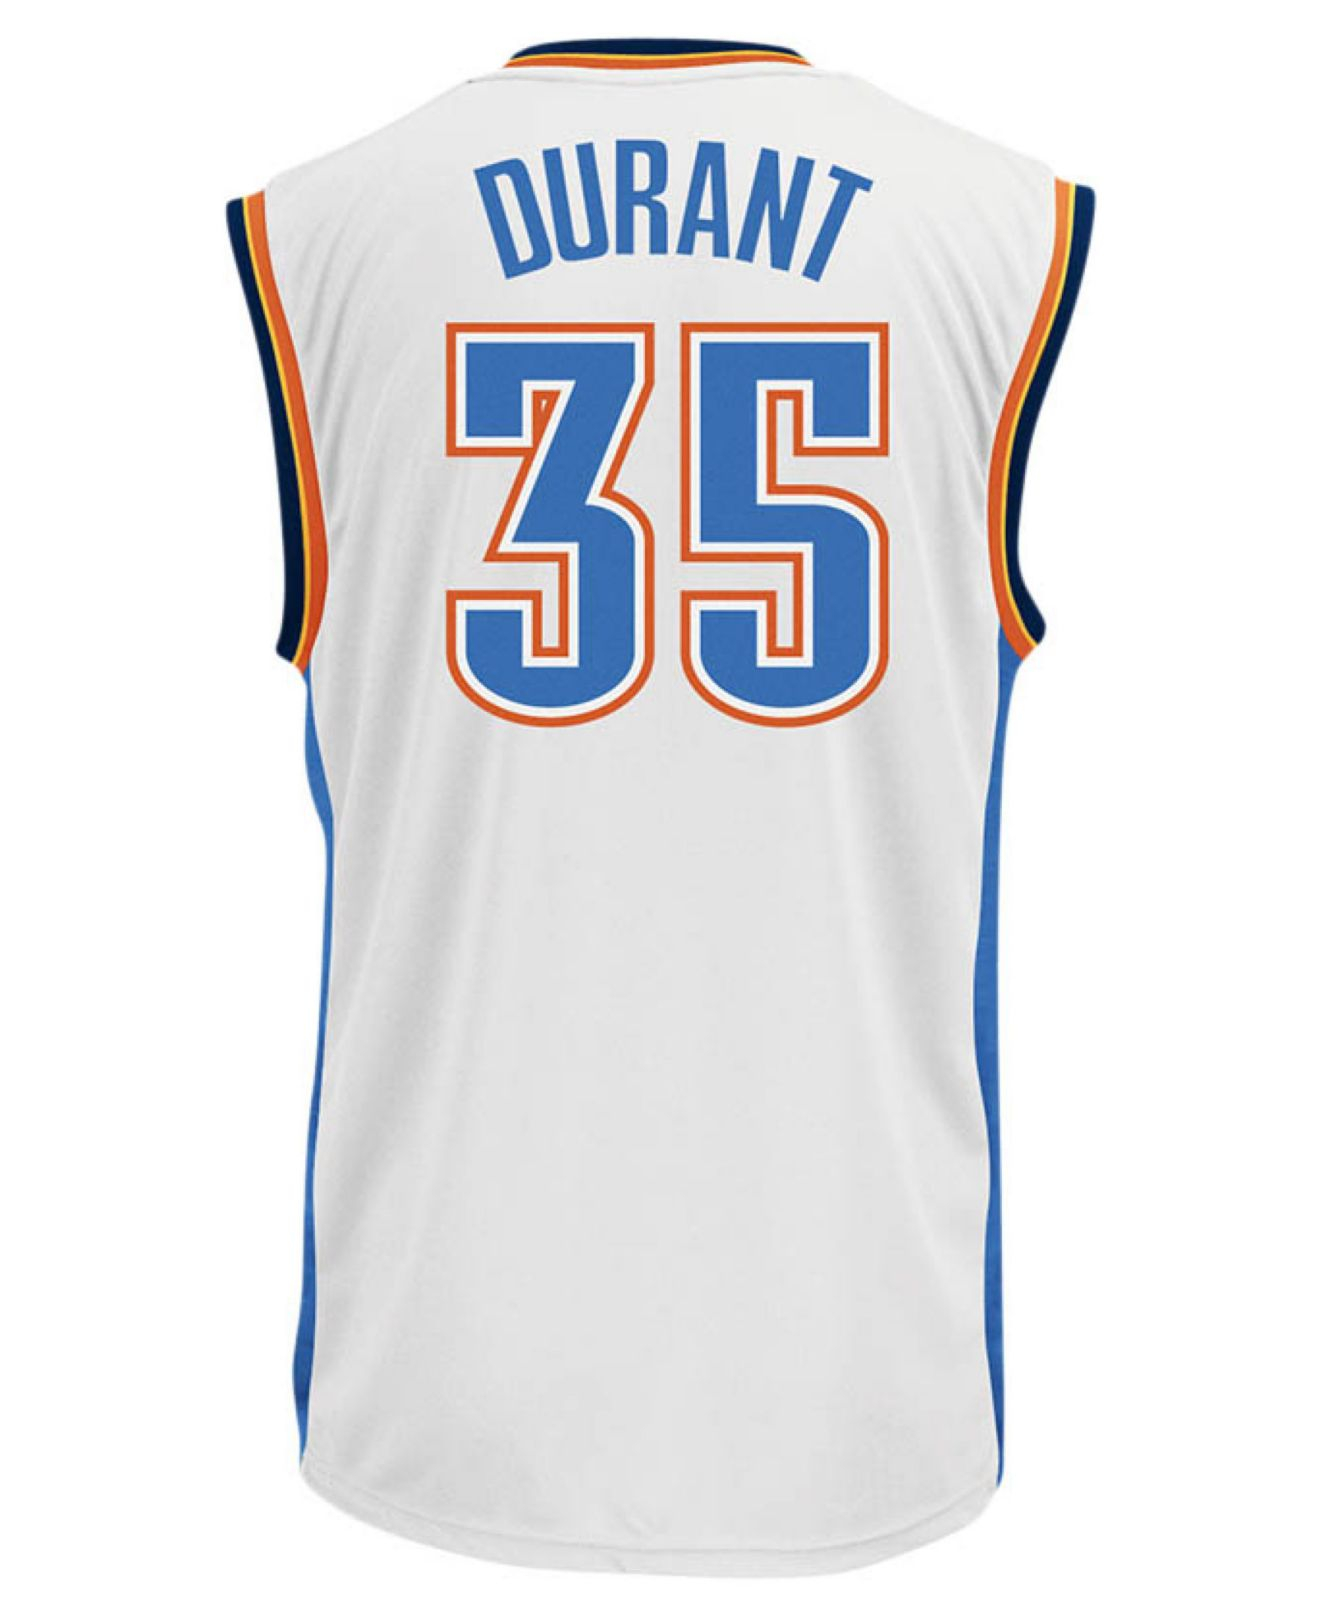 e4b497f2f adidas Originals Men s Oklahoma City Thunder Kevin Durant Jersey in ...